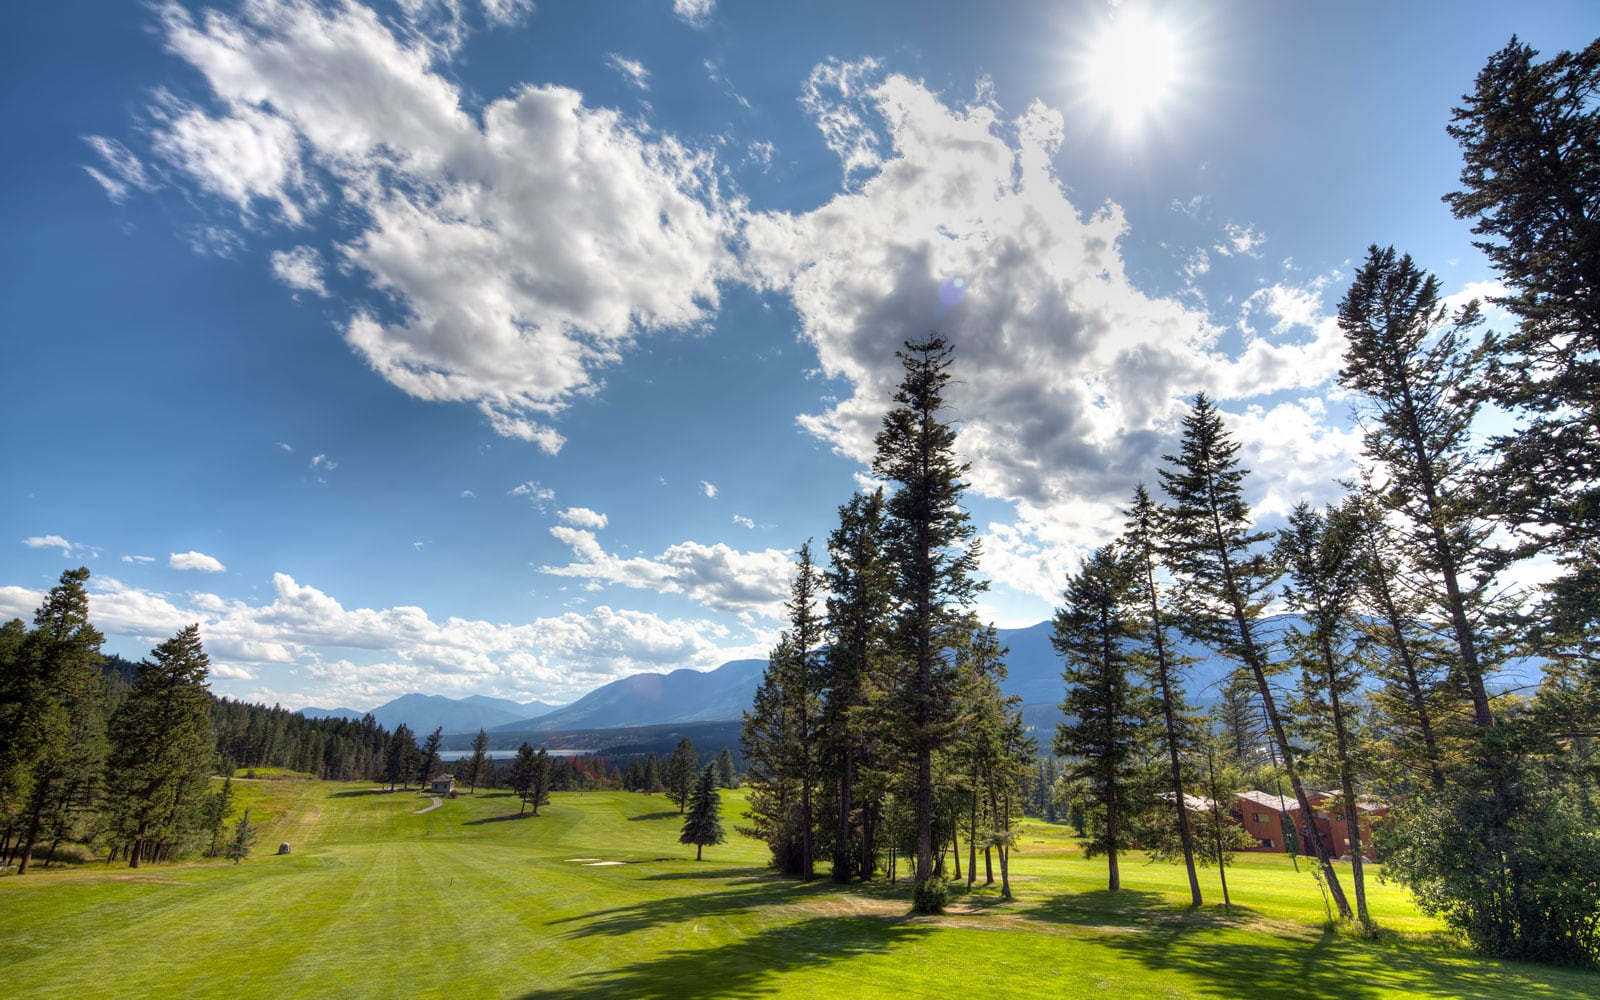 Fairmont Hot Springs Golf - Mountainside Golf Course - Just south of Springwater Hill